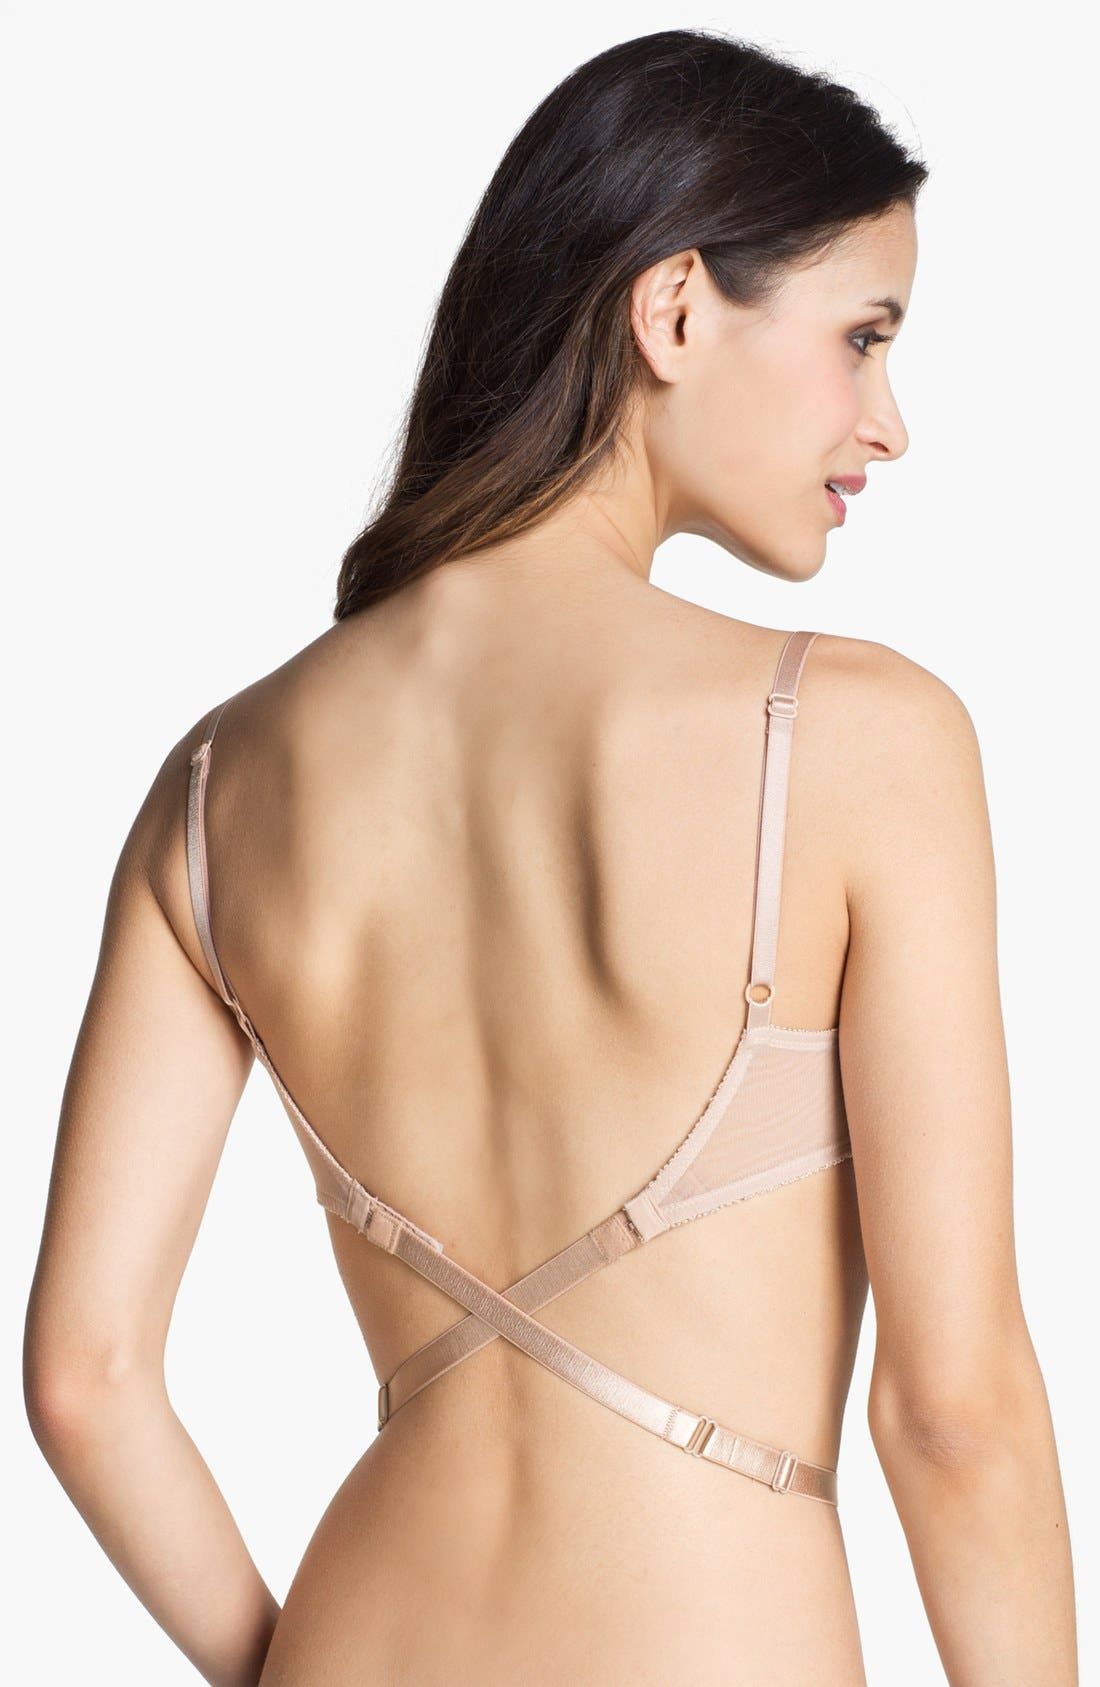 Main Image - Nordstrom Lingerie Low Back Strap 1-Hook Bra Attachment